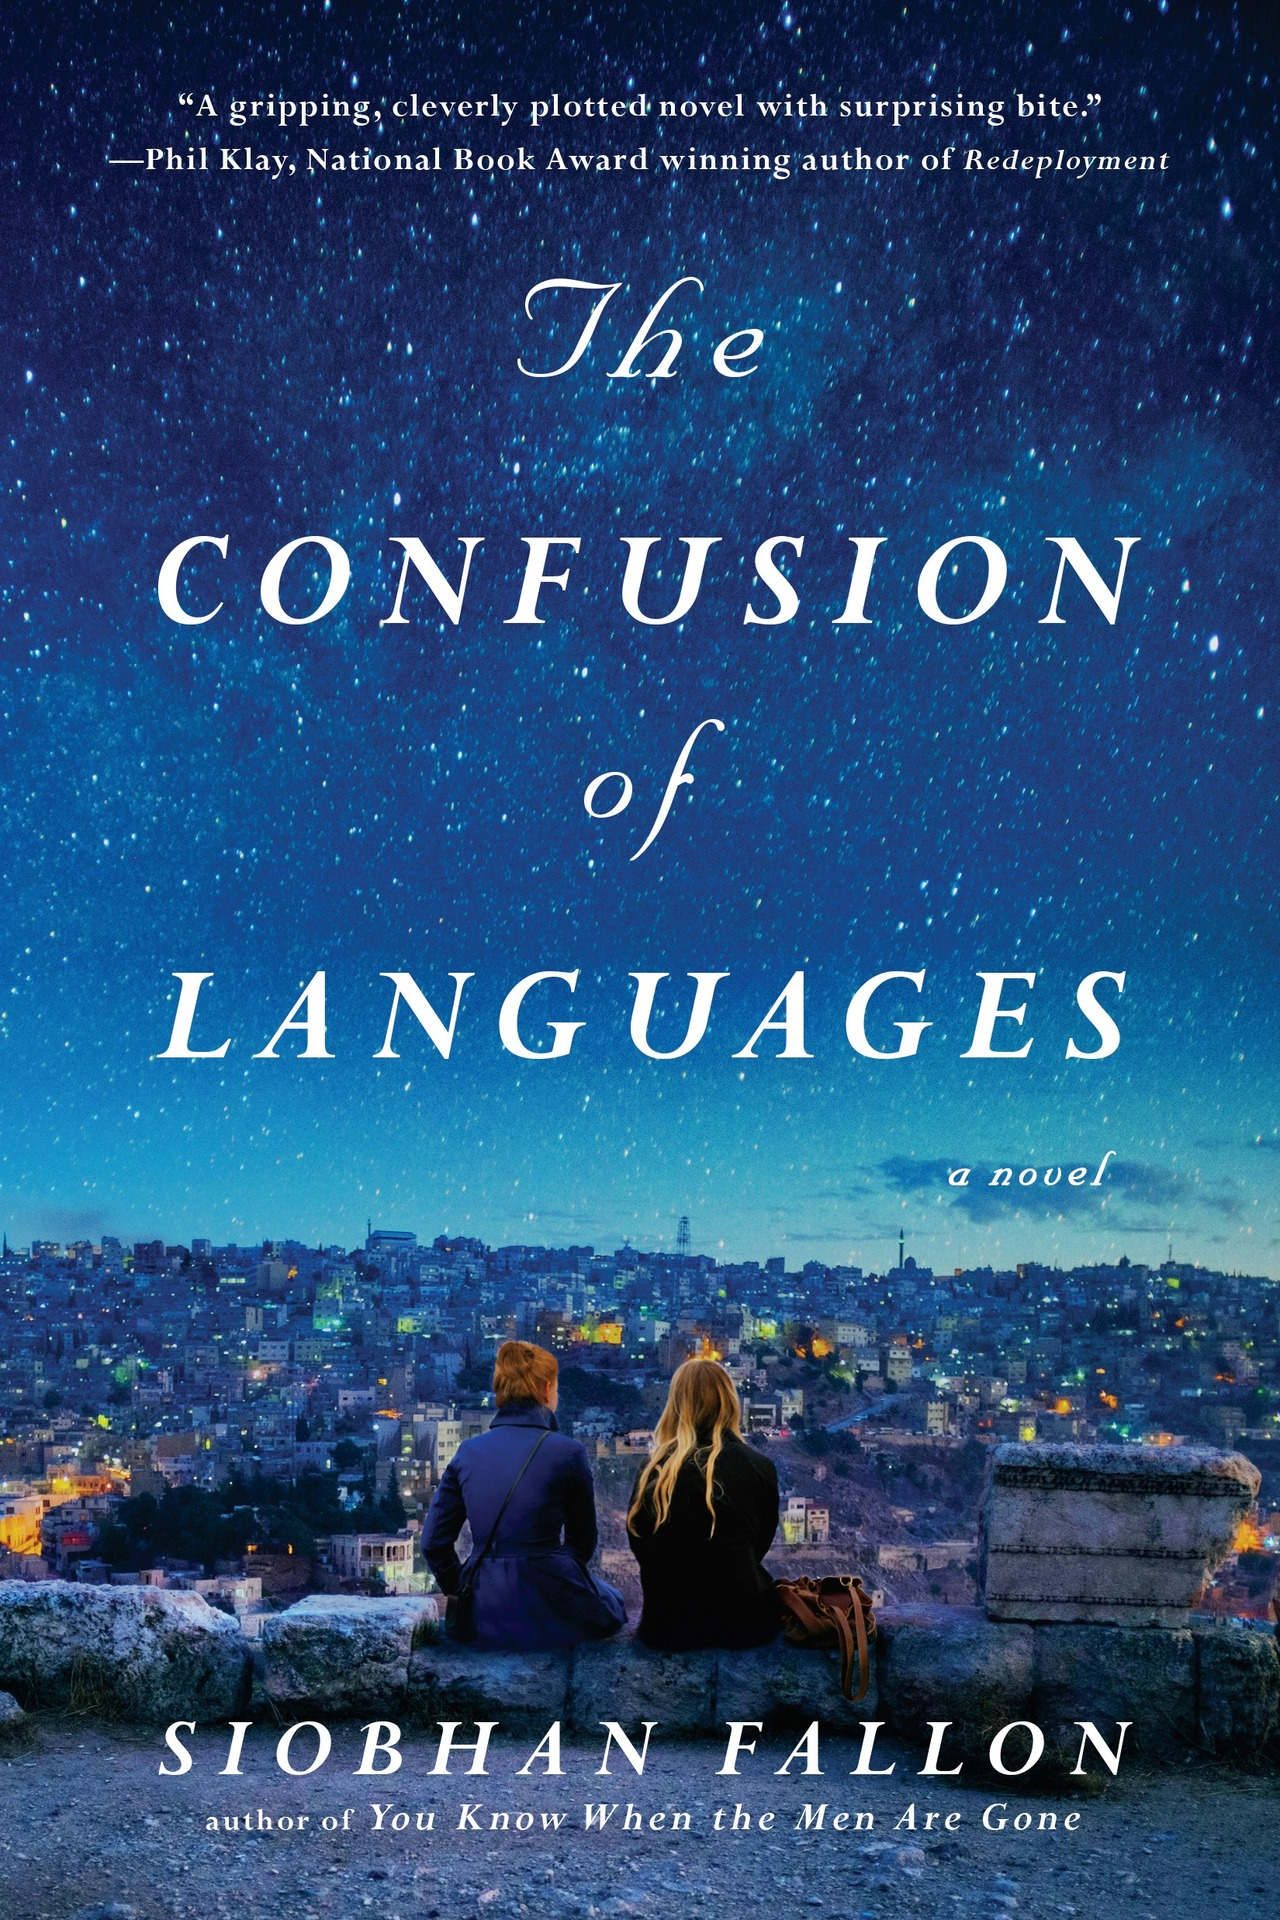 Confusion of languages final paperback cover